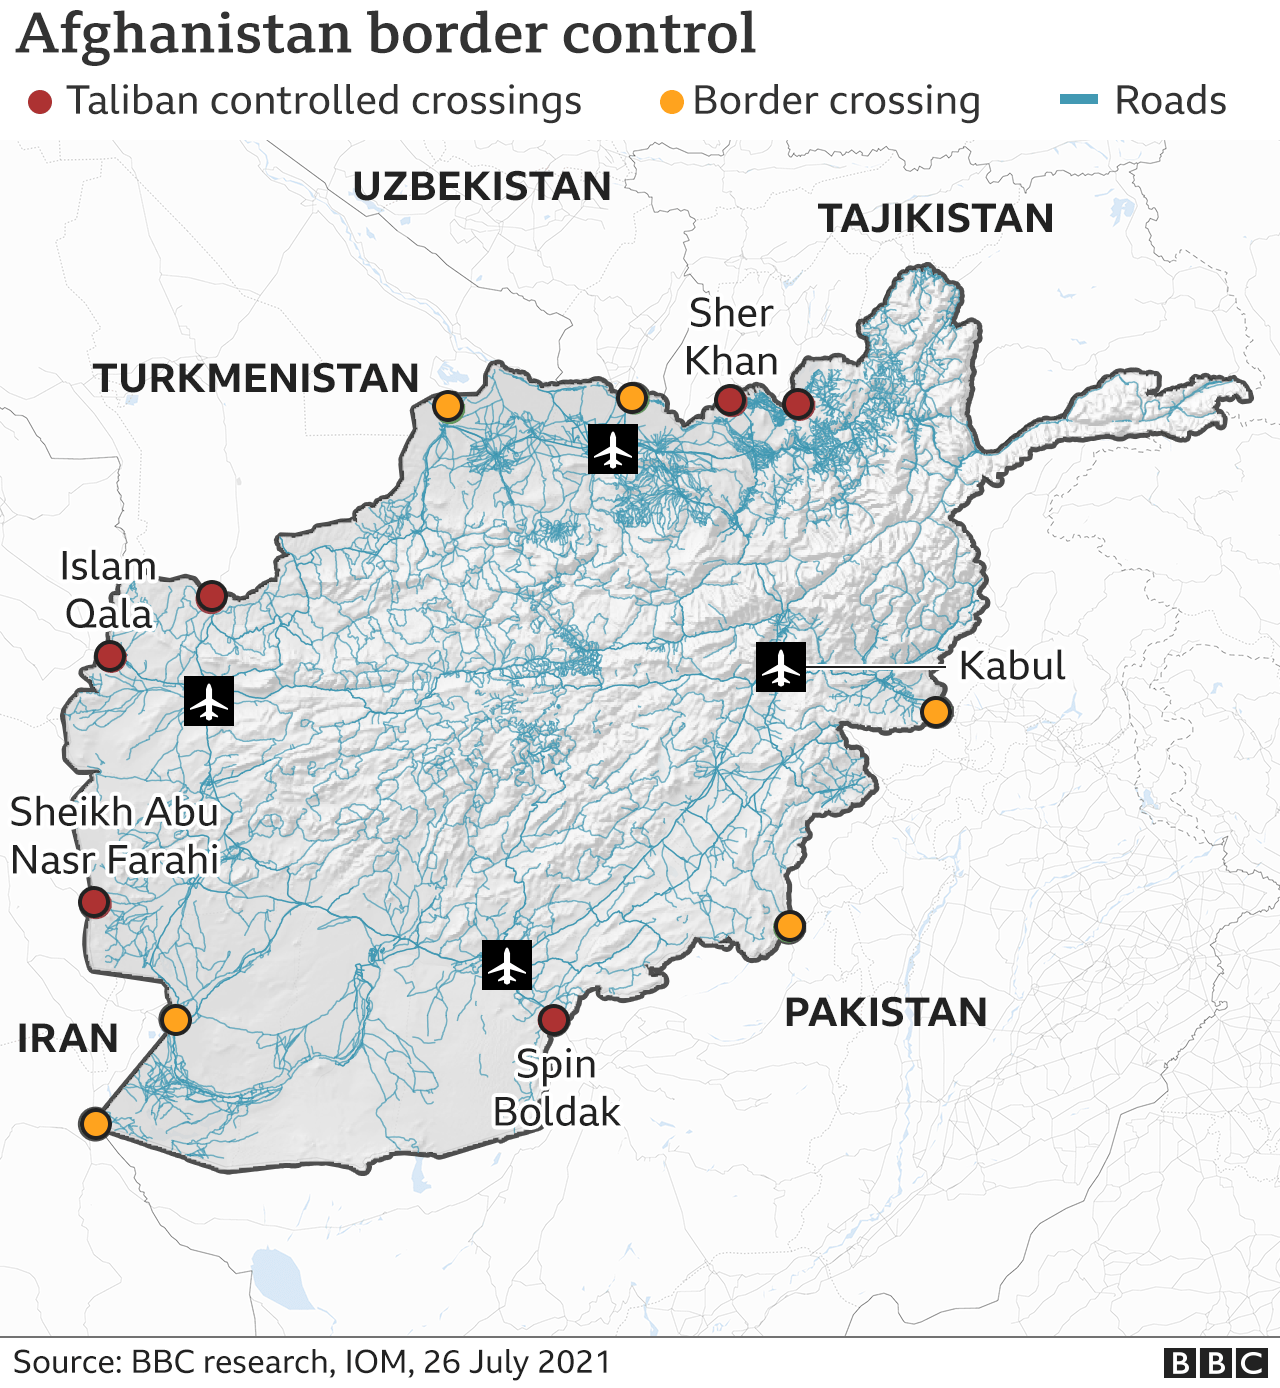 Map showing border crossings and checkpoints taken by Taliban